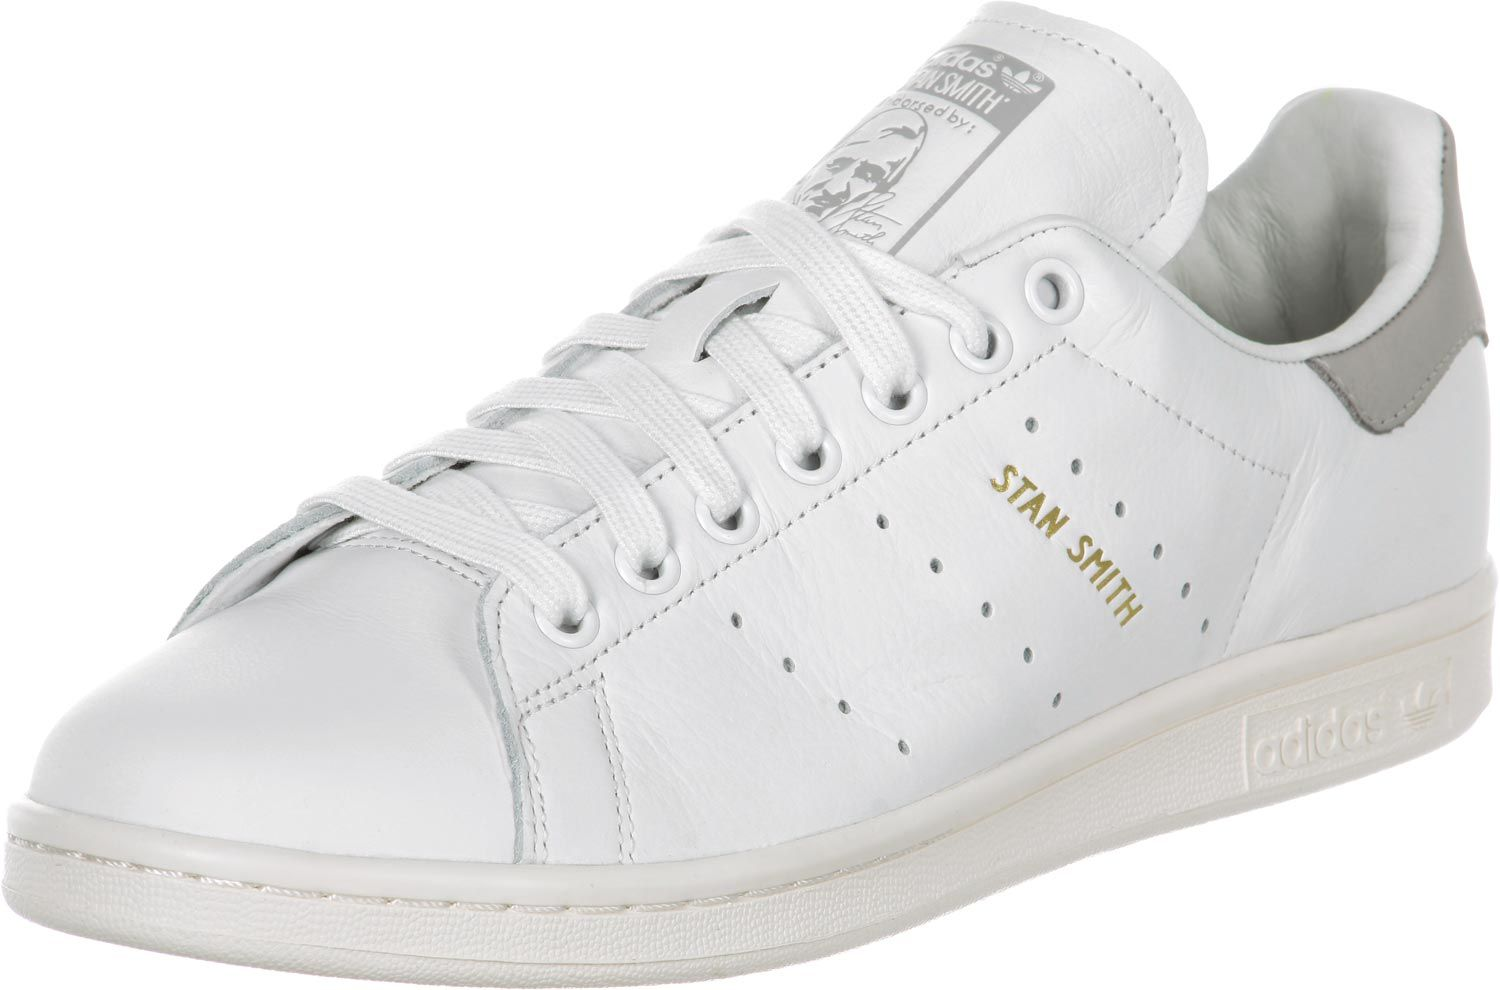 Damen Adidas Stan Smith Rosa Wholesale, Adidas Herrenschuhe